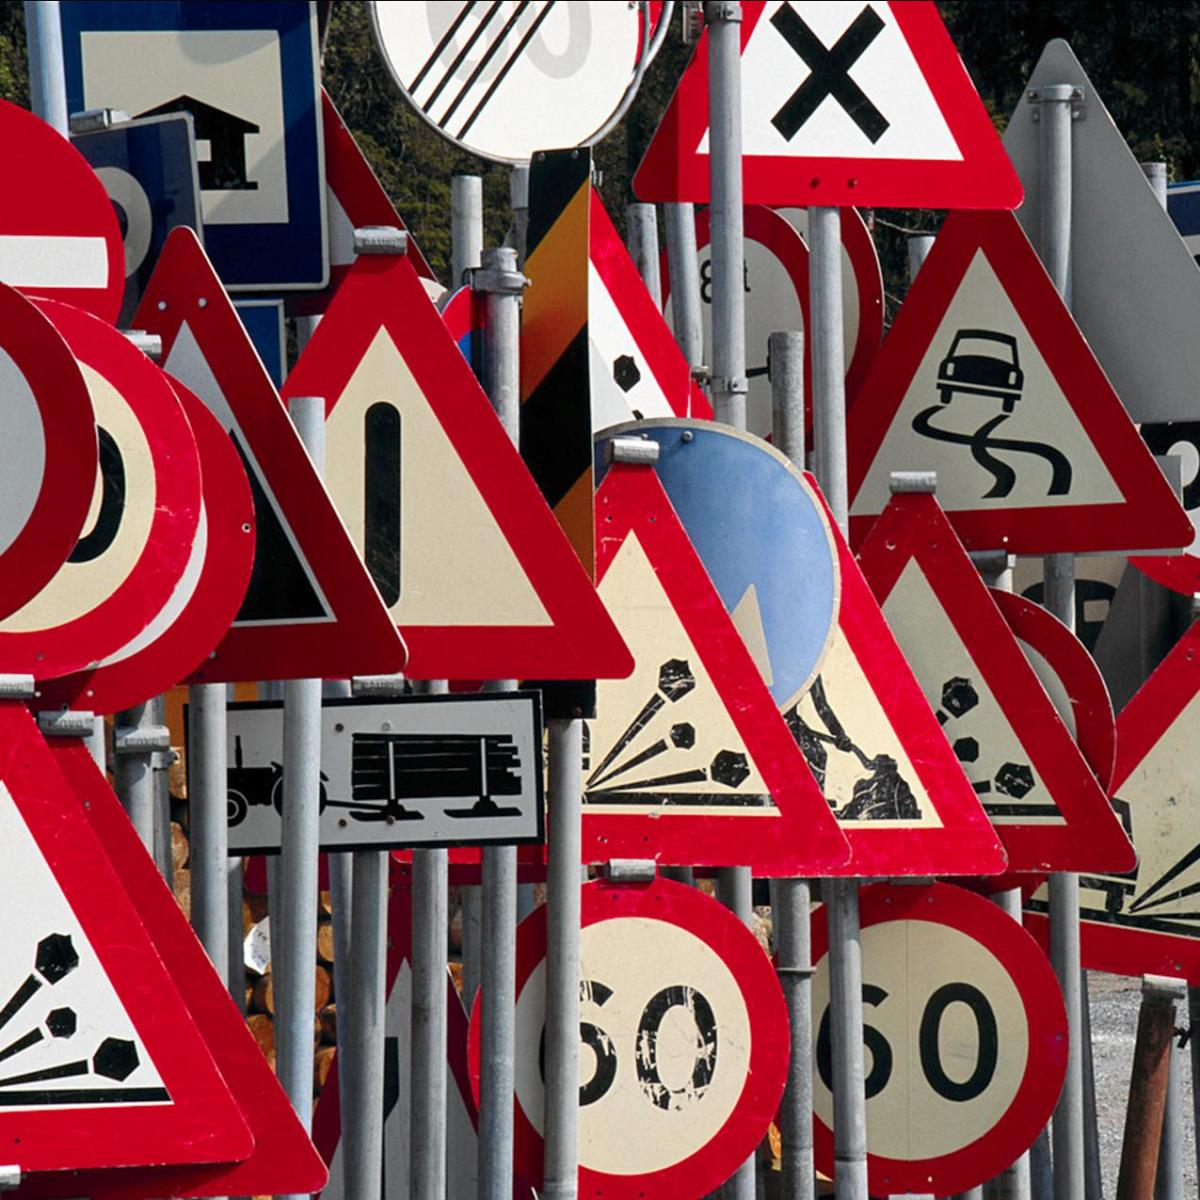 Most people have several warning signs that alert them to possible, upcoming danger.